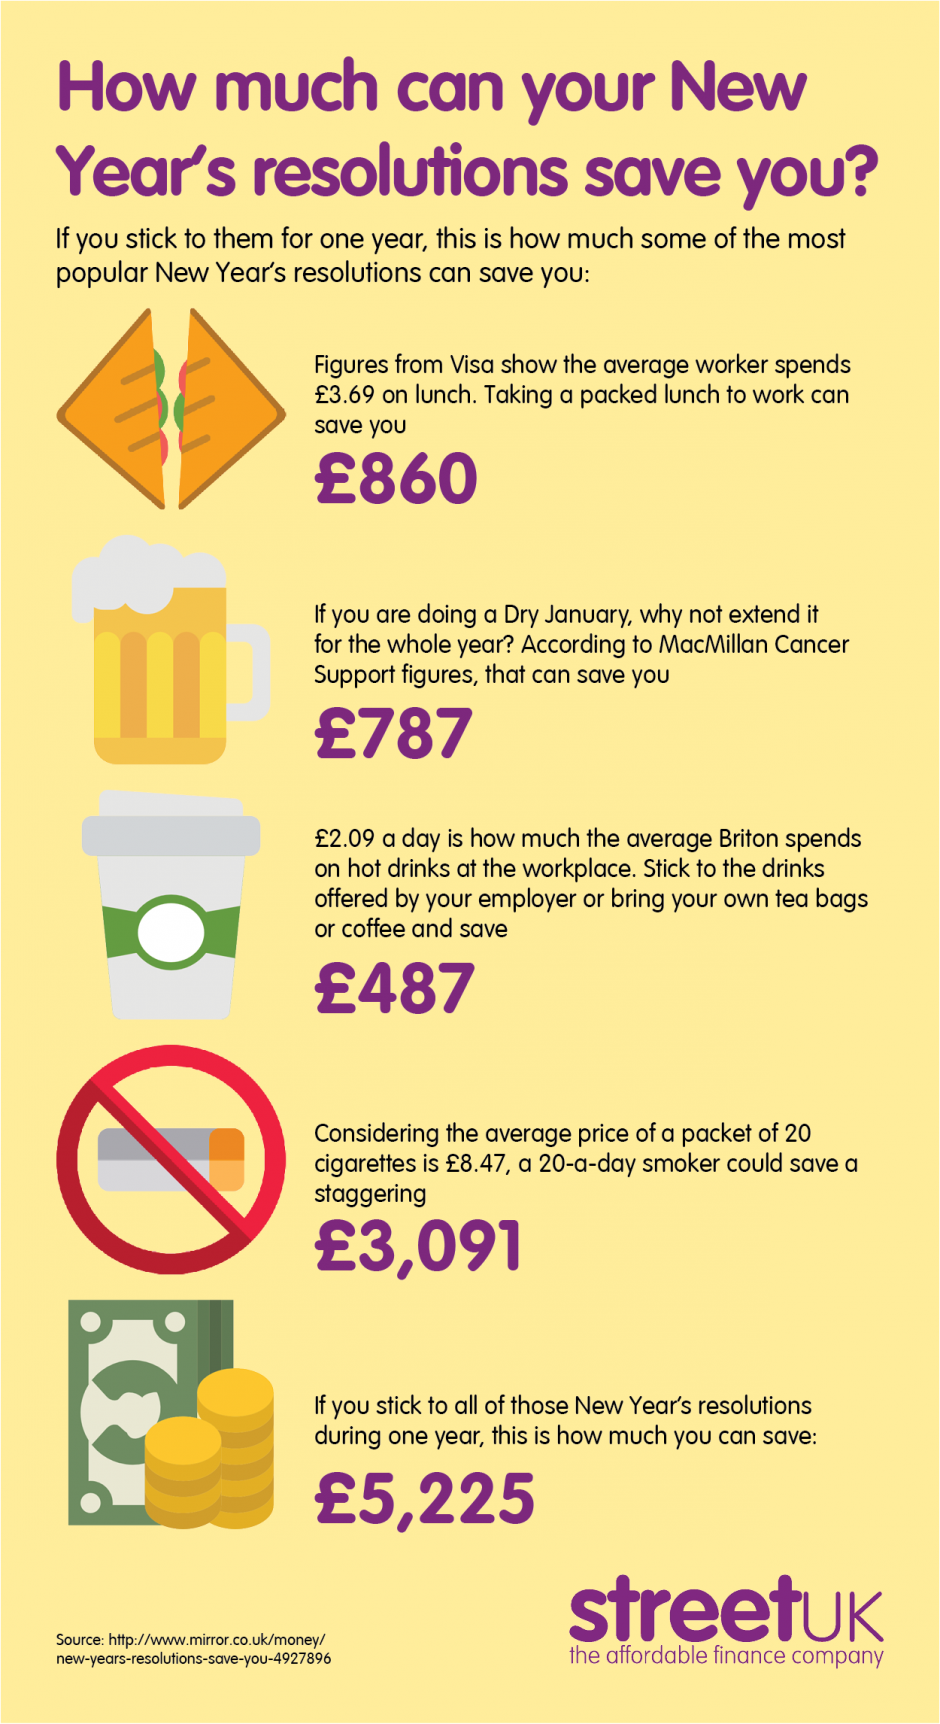 How much can your New Year's resolutions save you? - Street UK